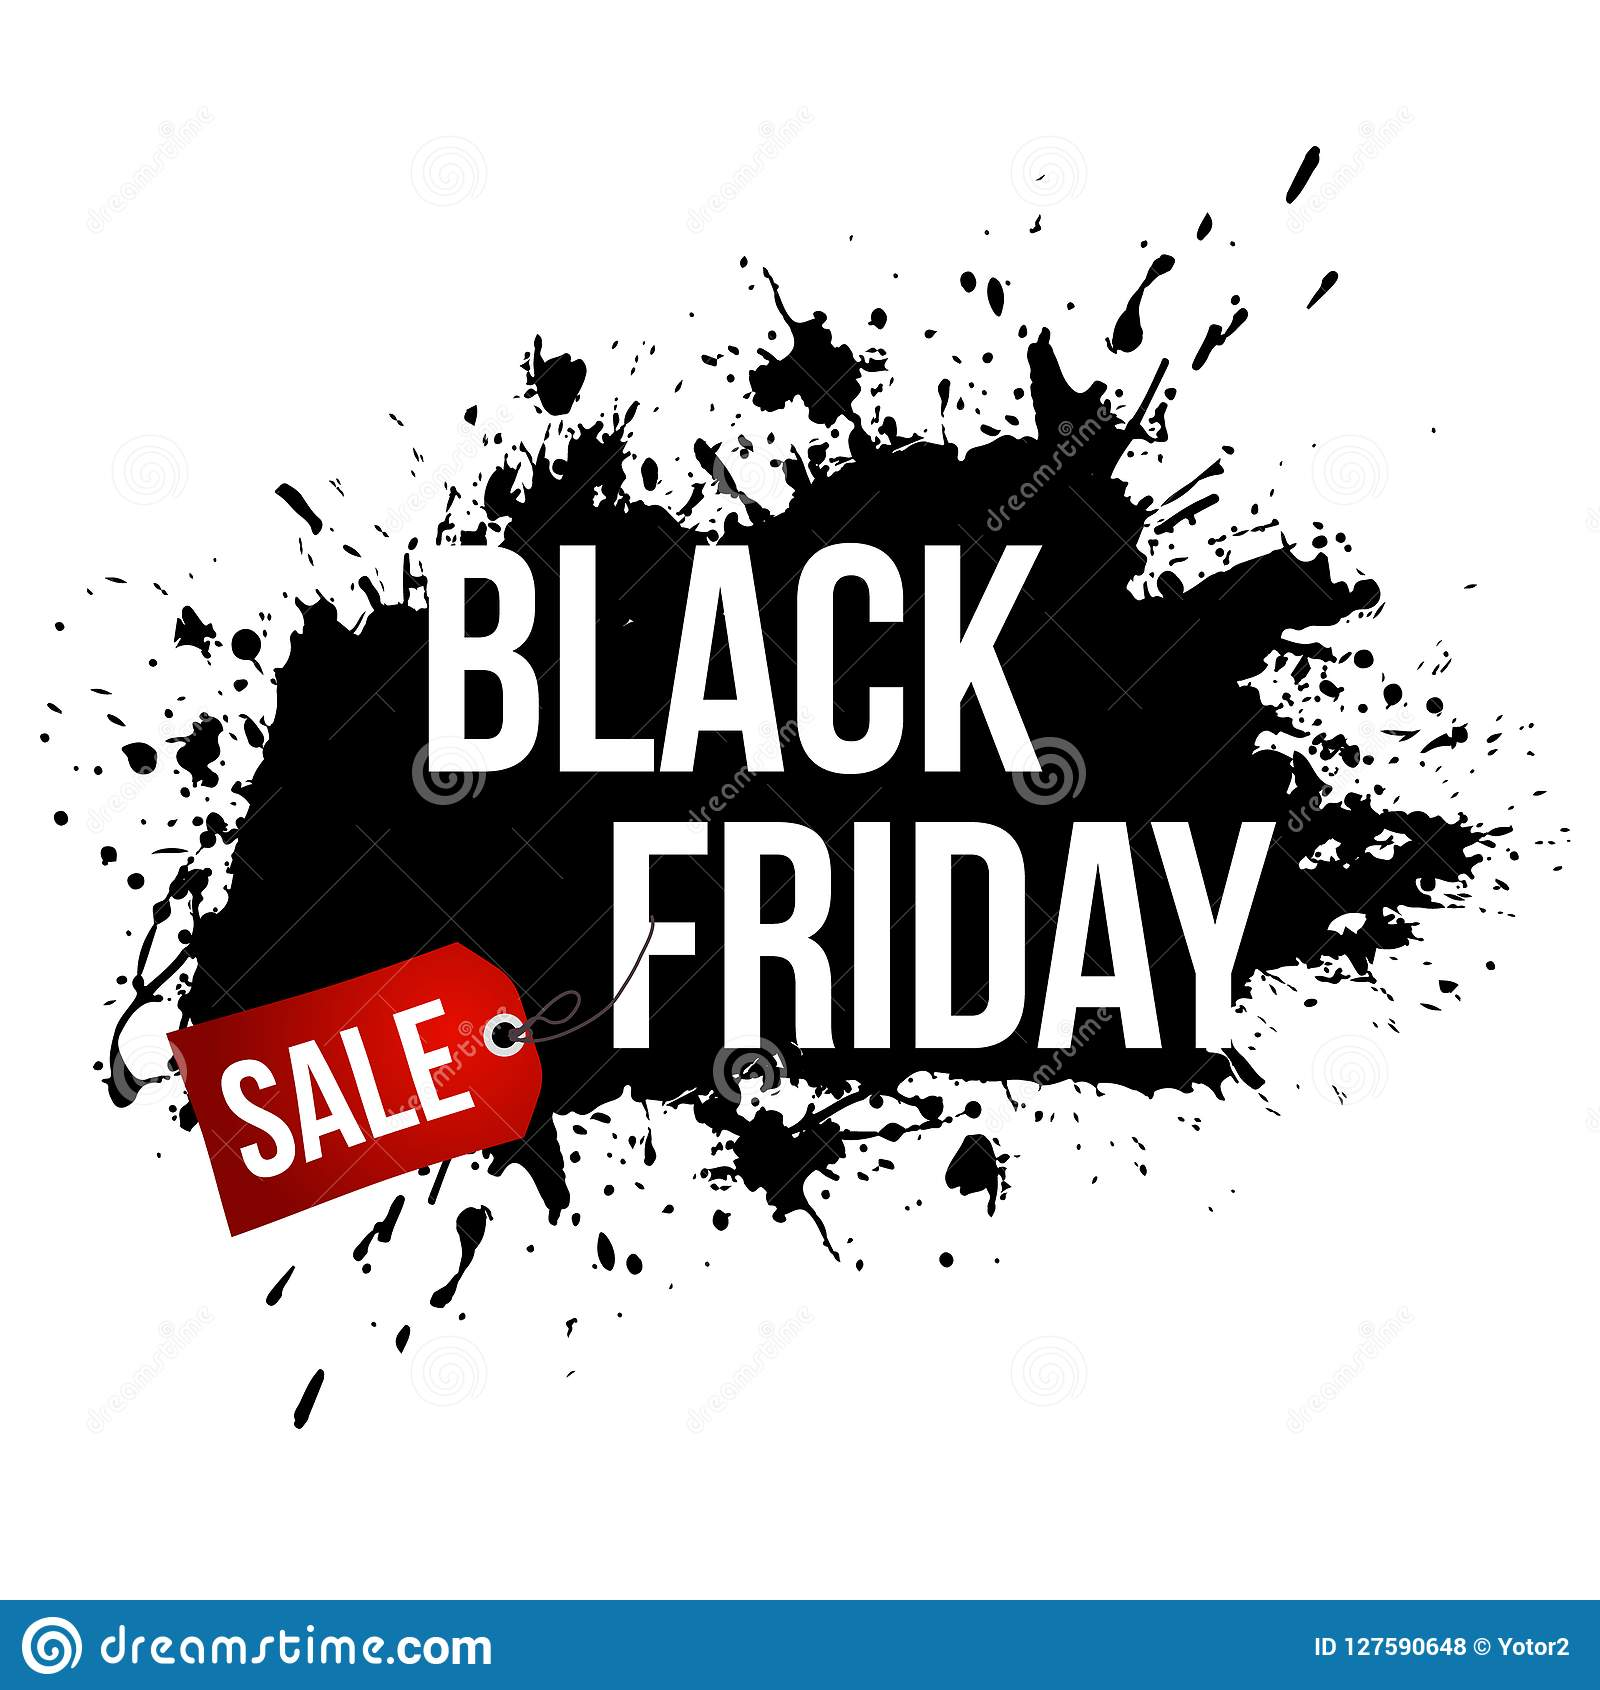 Black Friday Sale Grunge Banner With Black Paint Splashes On White Background Stock Illustration Illustration Of Holiday Brush 127590648